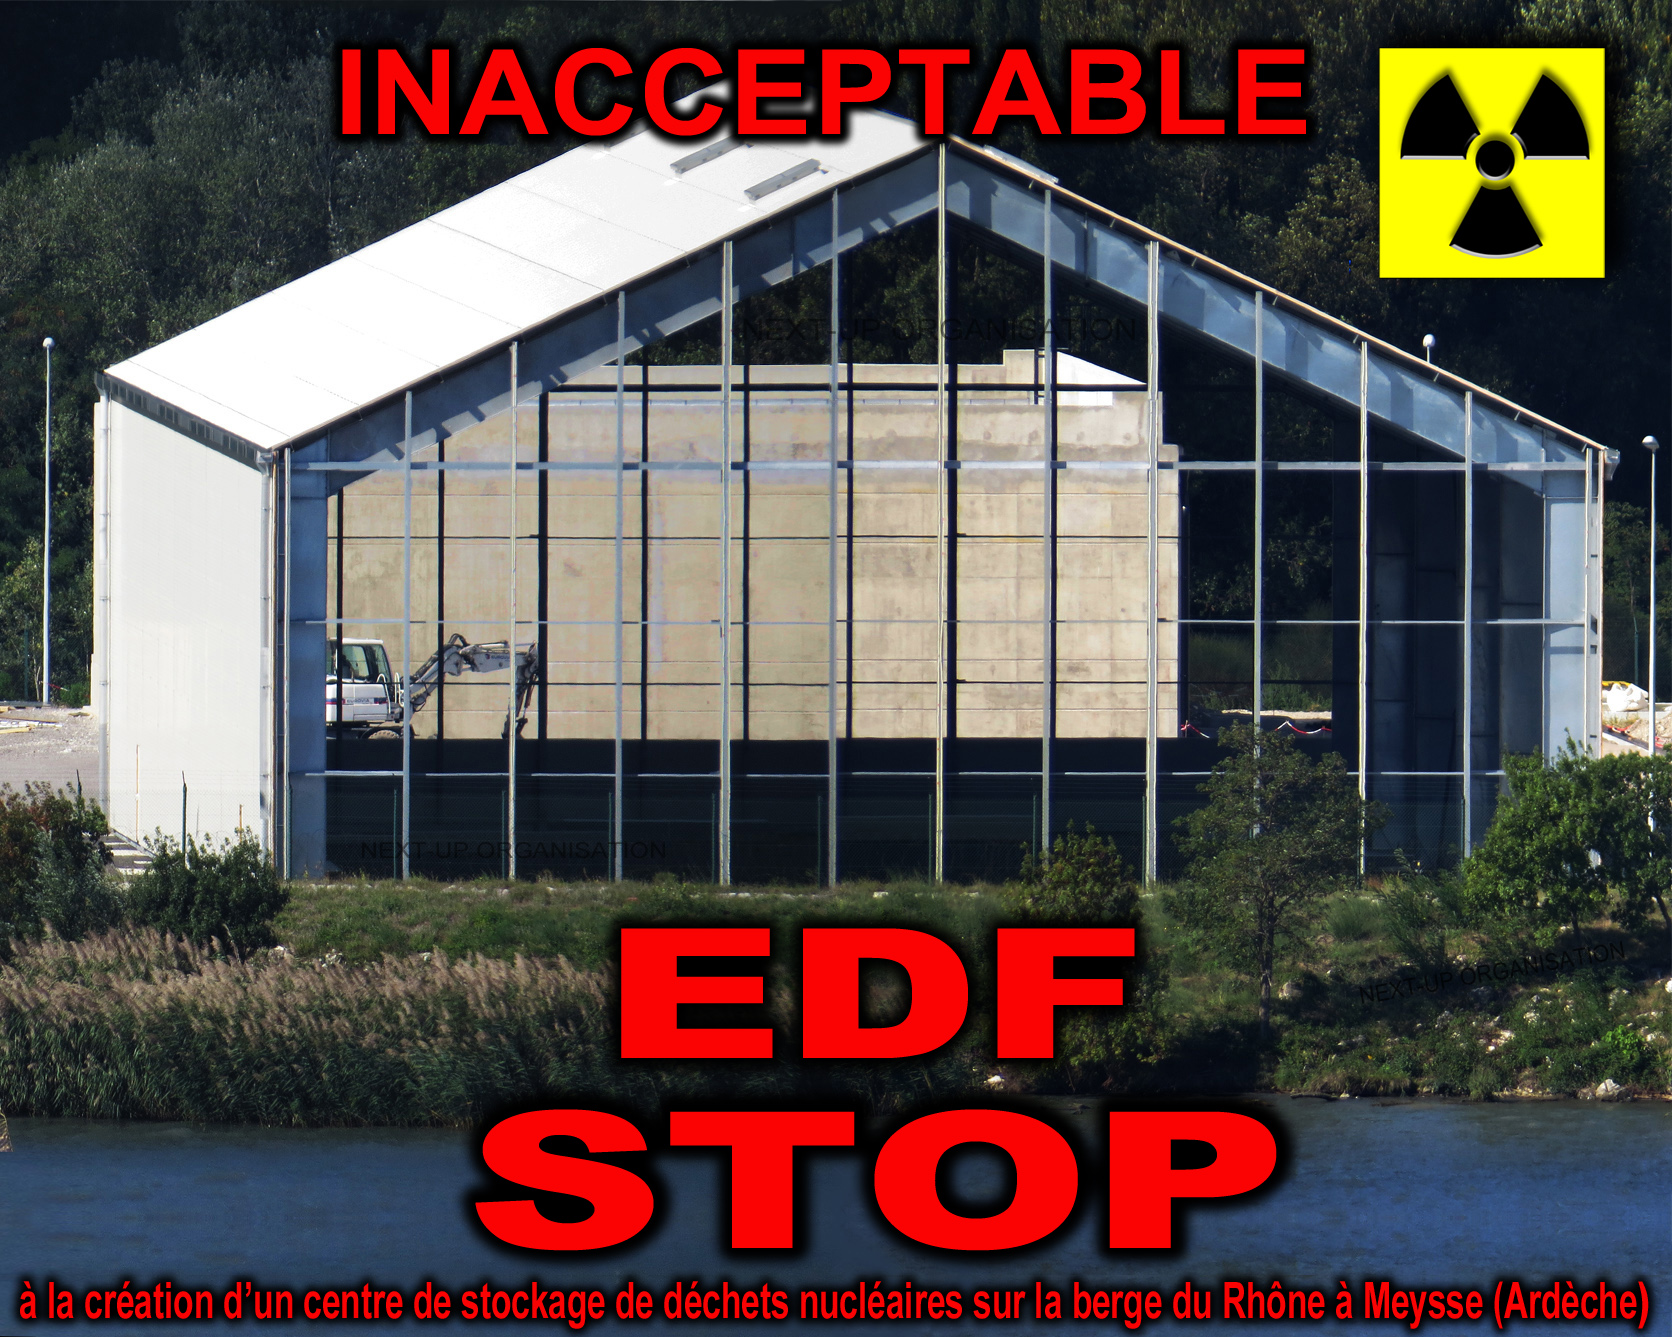 http://www.next-up.org/images/Inacceptable_EDF_Stop_Creation_site_stockage_dechets_nucleaire_berge_du_Rhone_Meysse_Ardeche.jpg